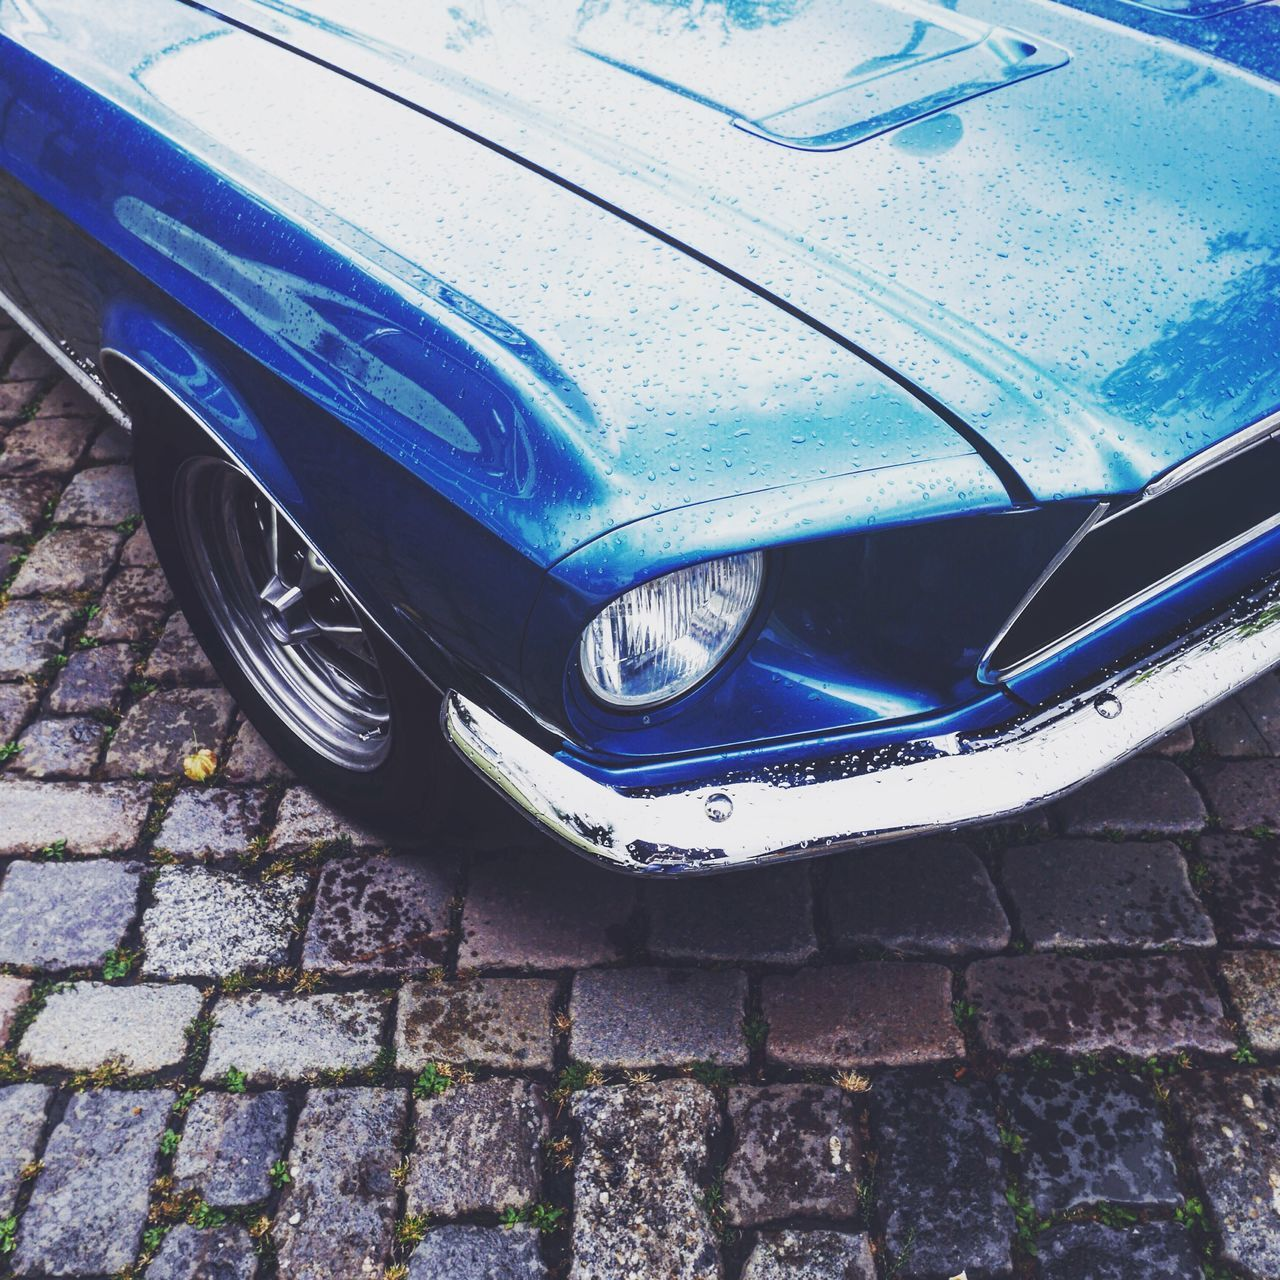 Rainy s u n d a y - Raindrops Cars Vintage Cars Transportation Mode Of Transport Close-up Old-fashioned Cropped Day Stationary Retro Styled Retro Style Vintage Blue Wave The Drive